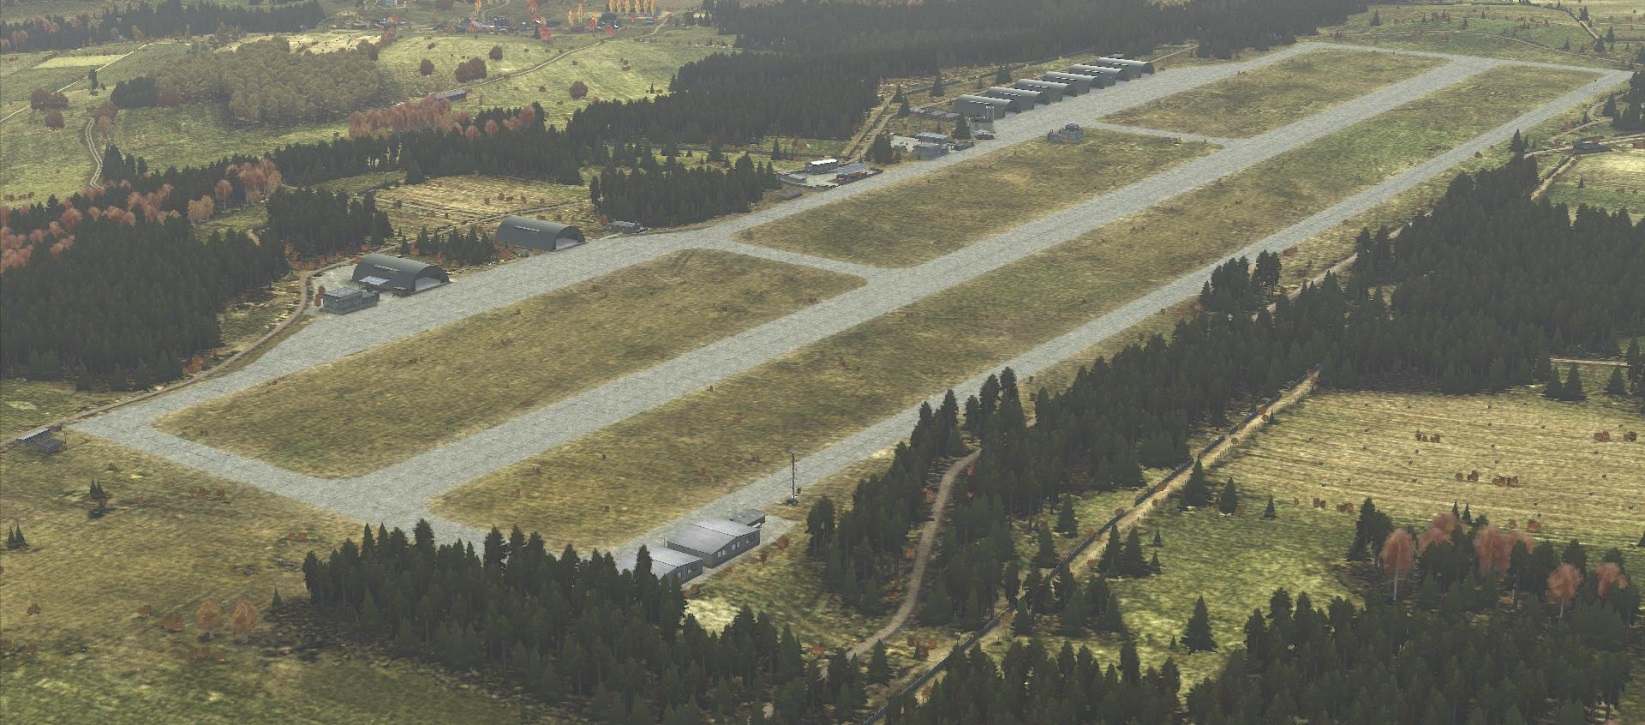 North-west airfield & North-west airfield | DayZ Standalone Wiki | FANDOM powered by Wikia